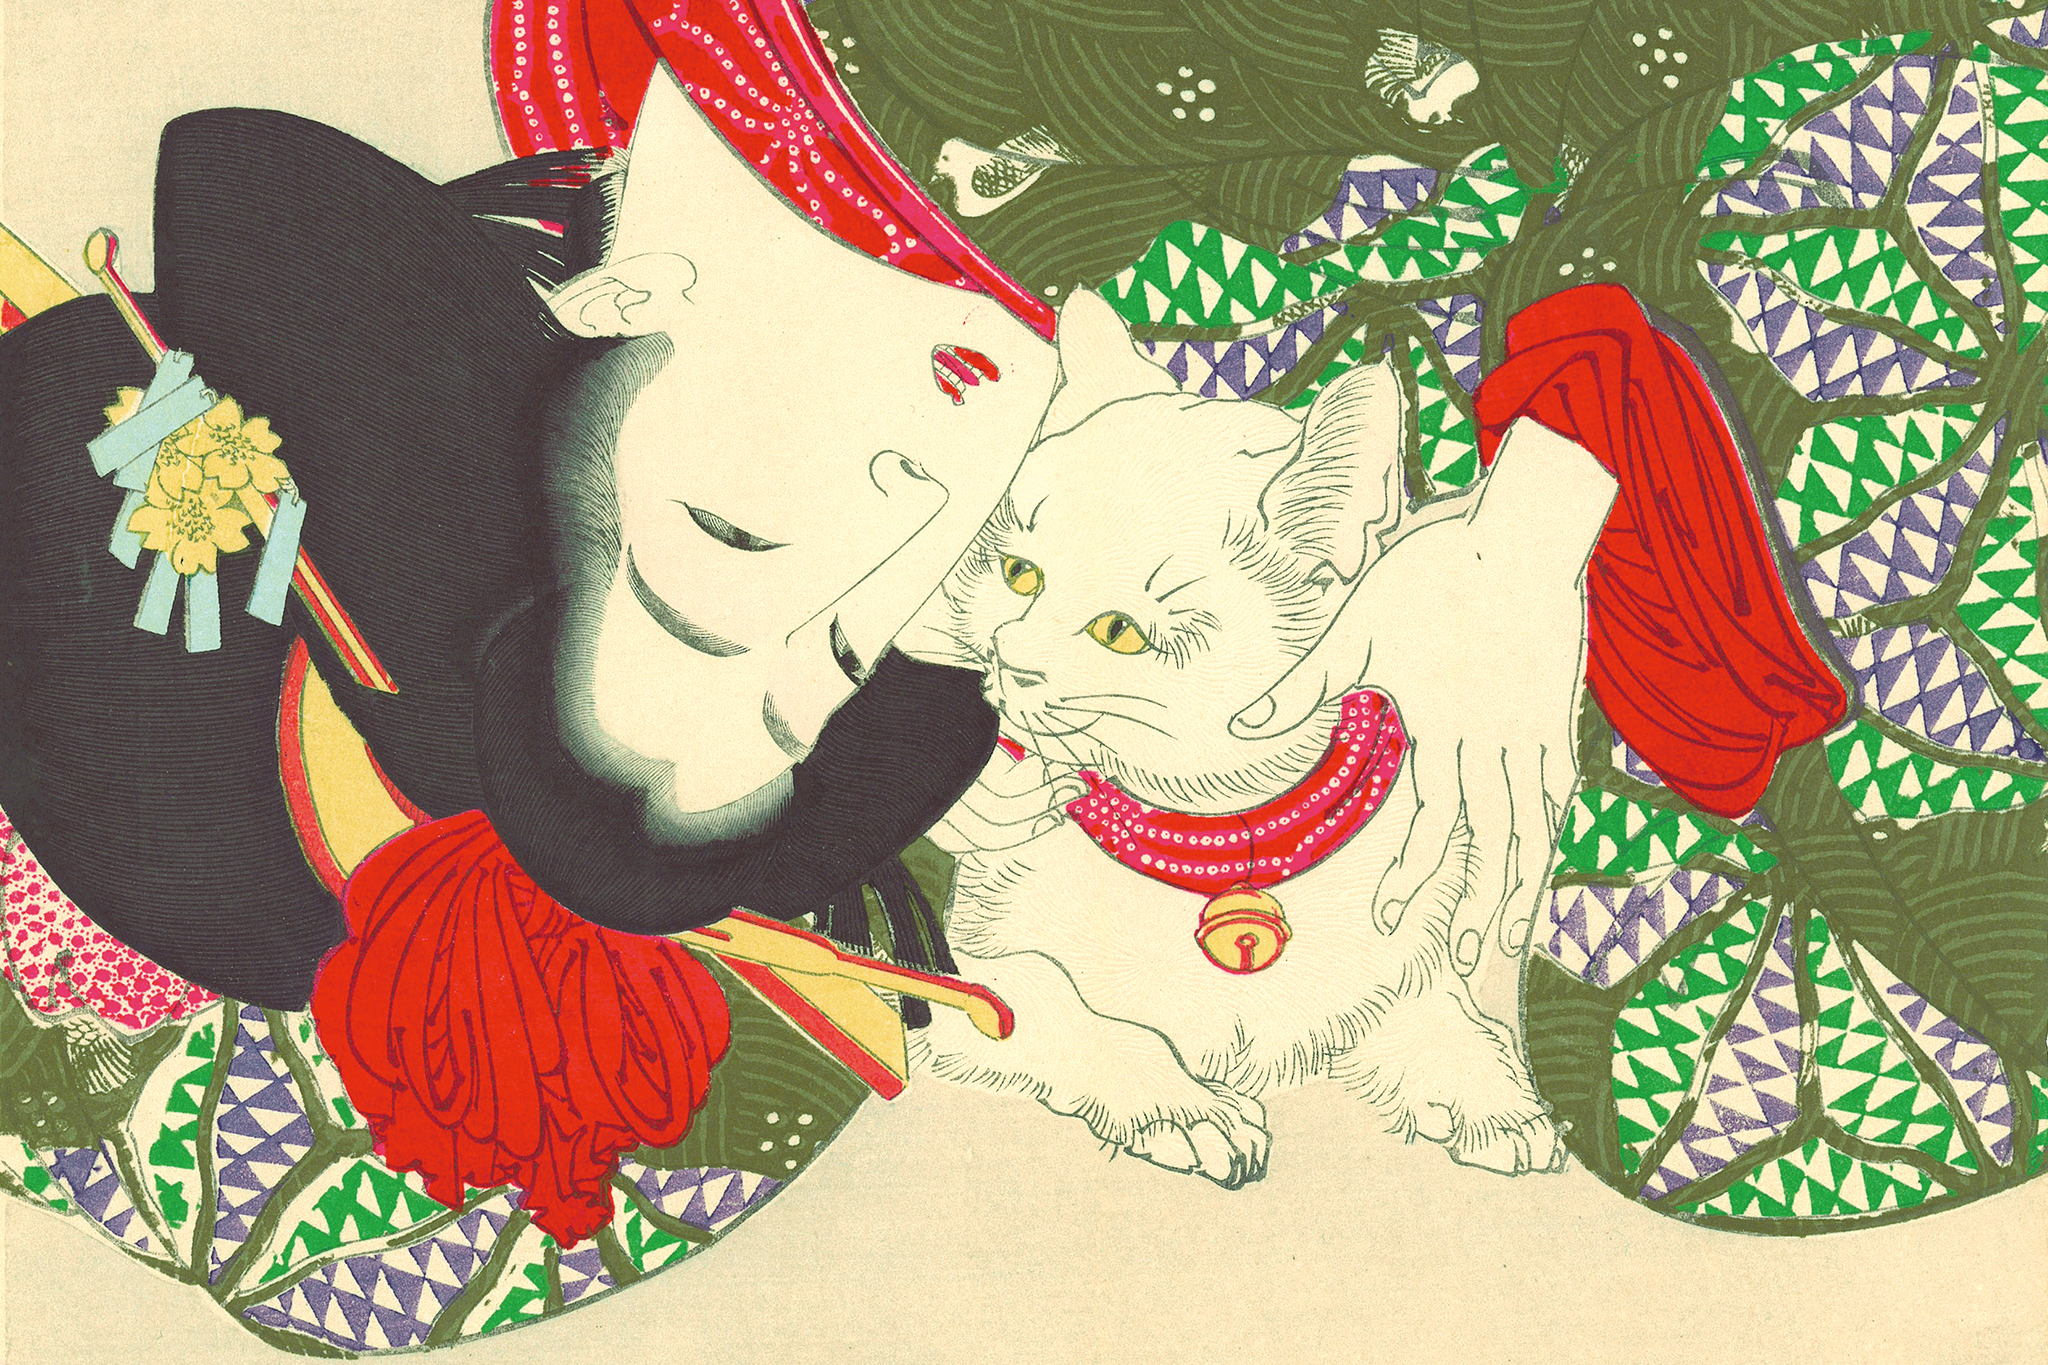 Get your fill of cat pictures at the Japan Society